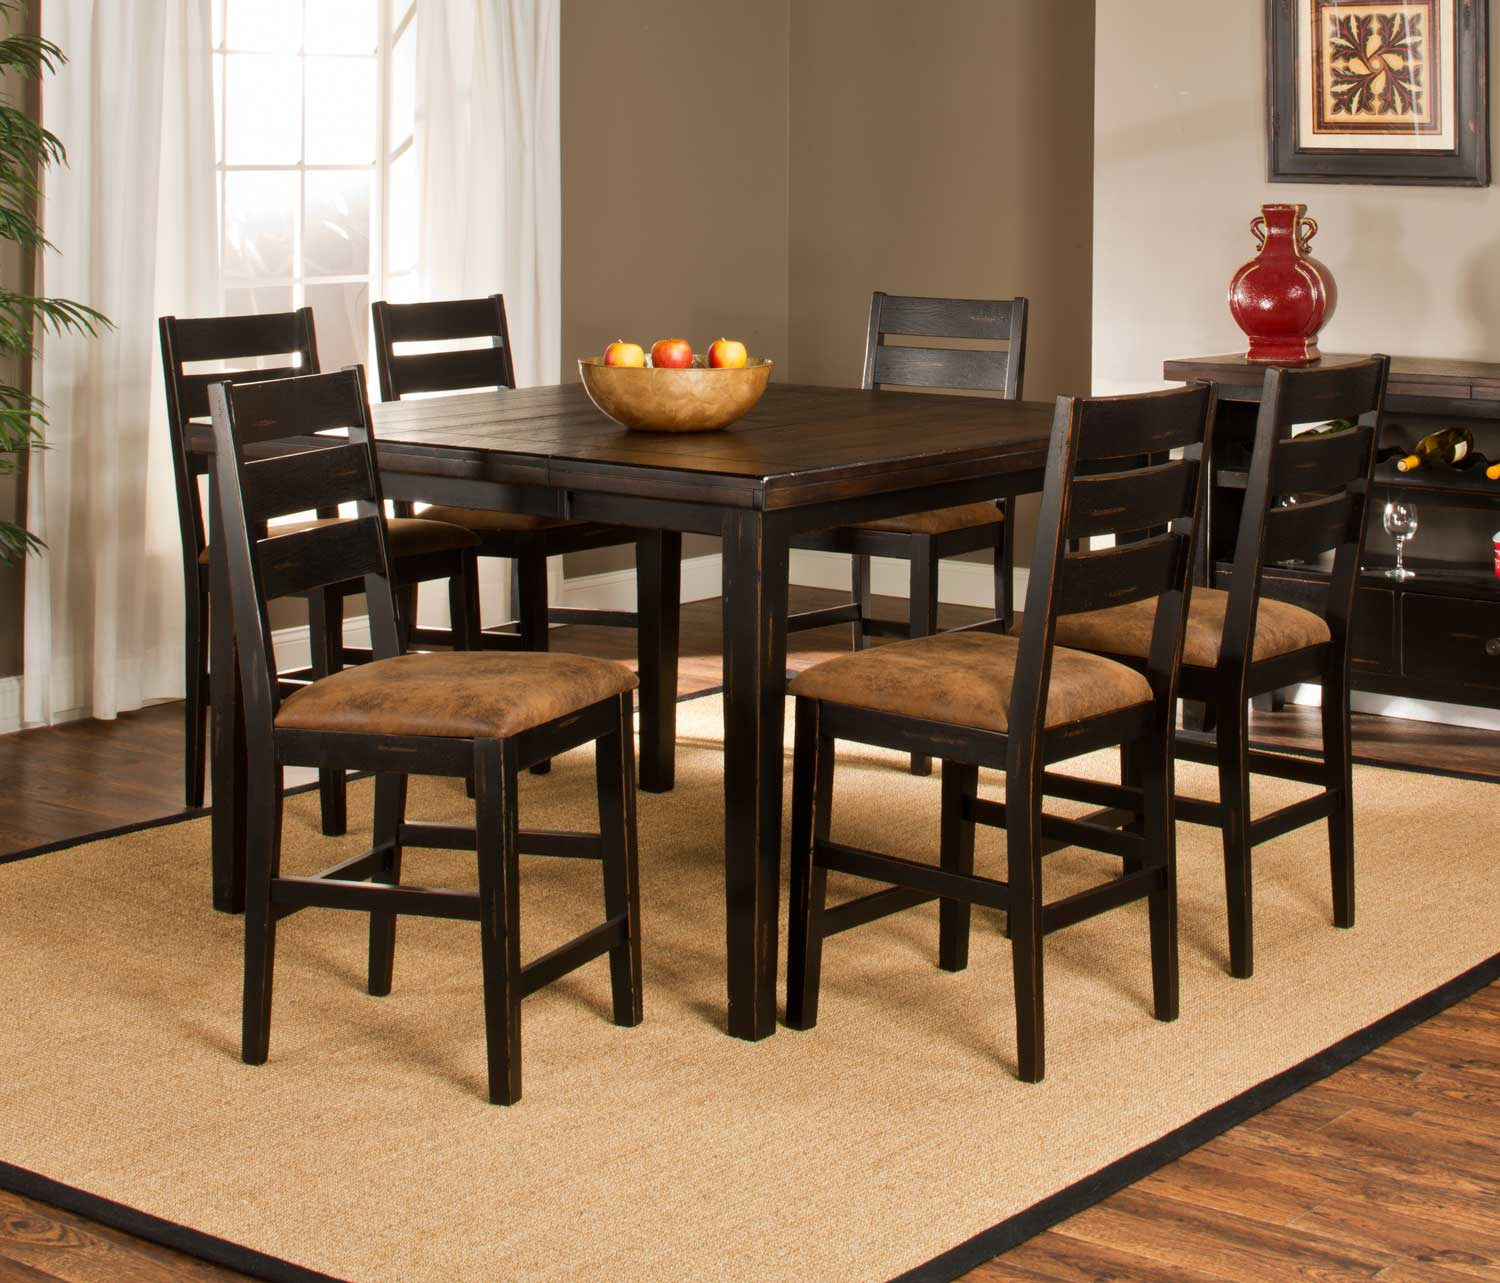 Hillsdale Killarney Counter Height 7 Piece Dining Set - Black/ Antique Brown